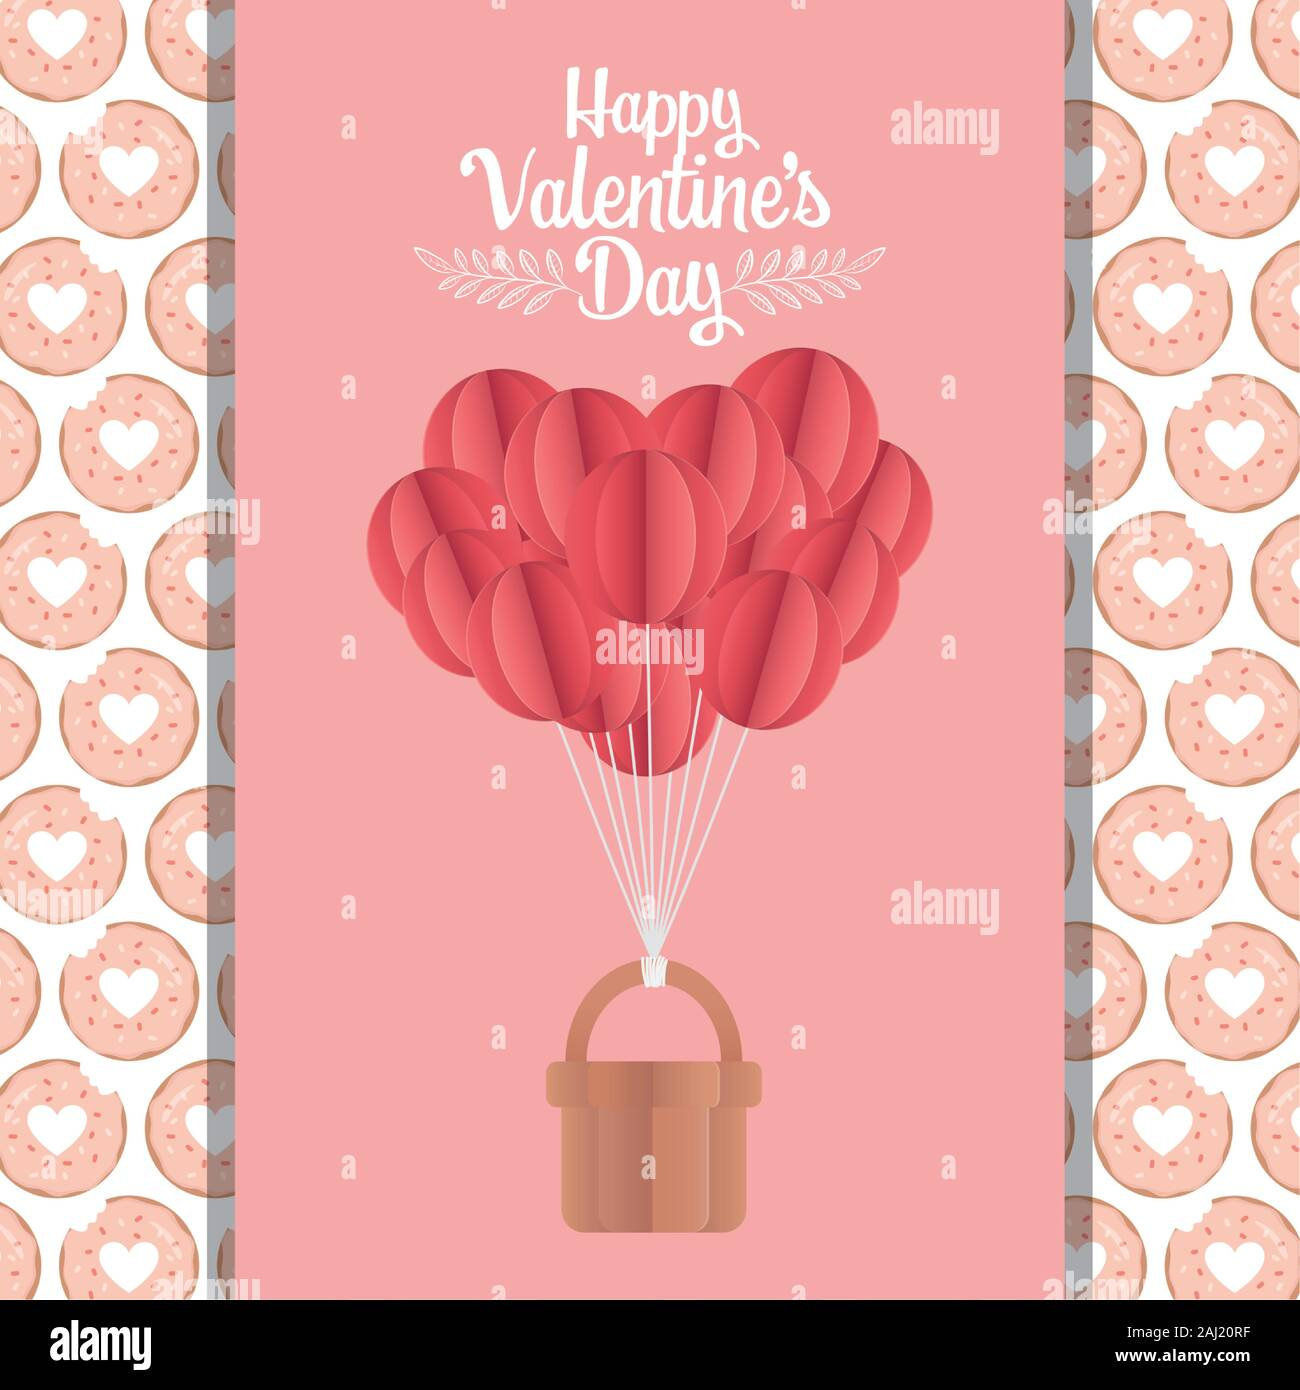 DIY Origami Paper Balloon Place Cards | Paper balloon, Origami ... | 1390x1300